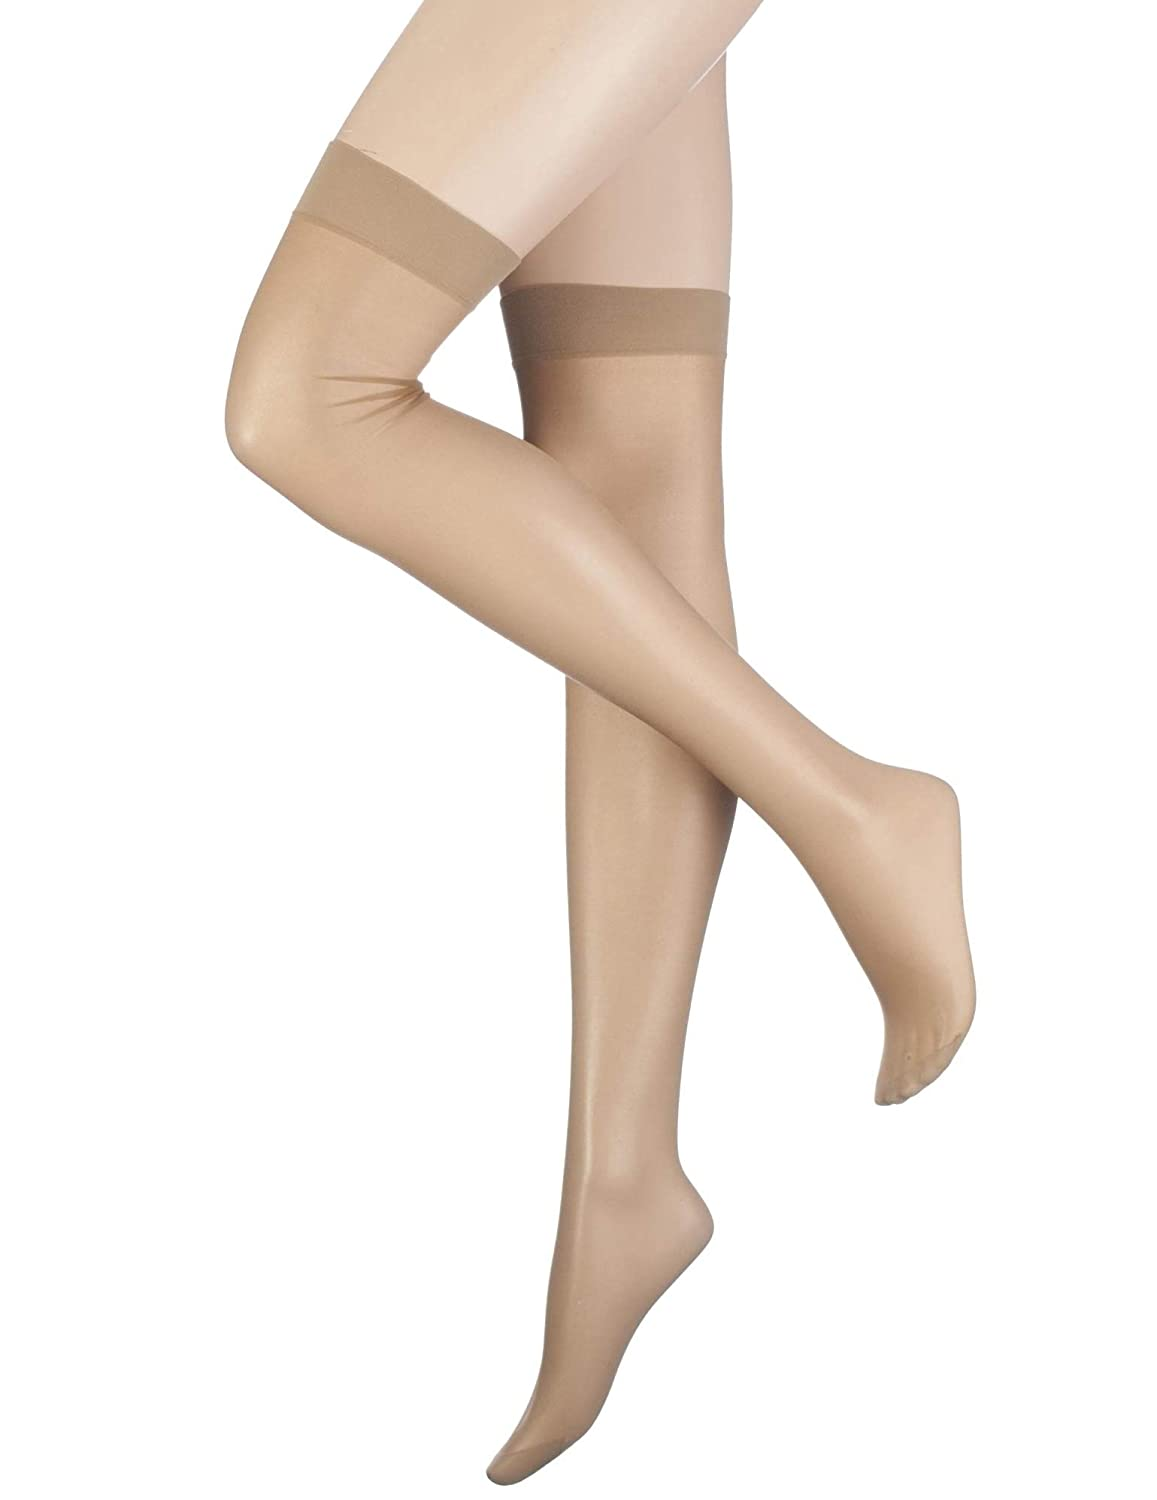 69f8d10413a Pretty Polly Women s 1 Pair Nylons - Stockings at Amazon Women s Clothing  store